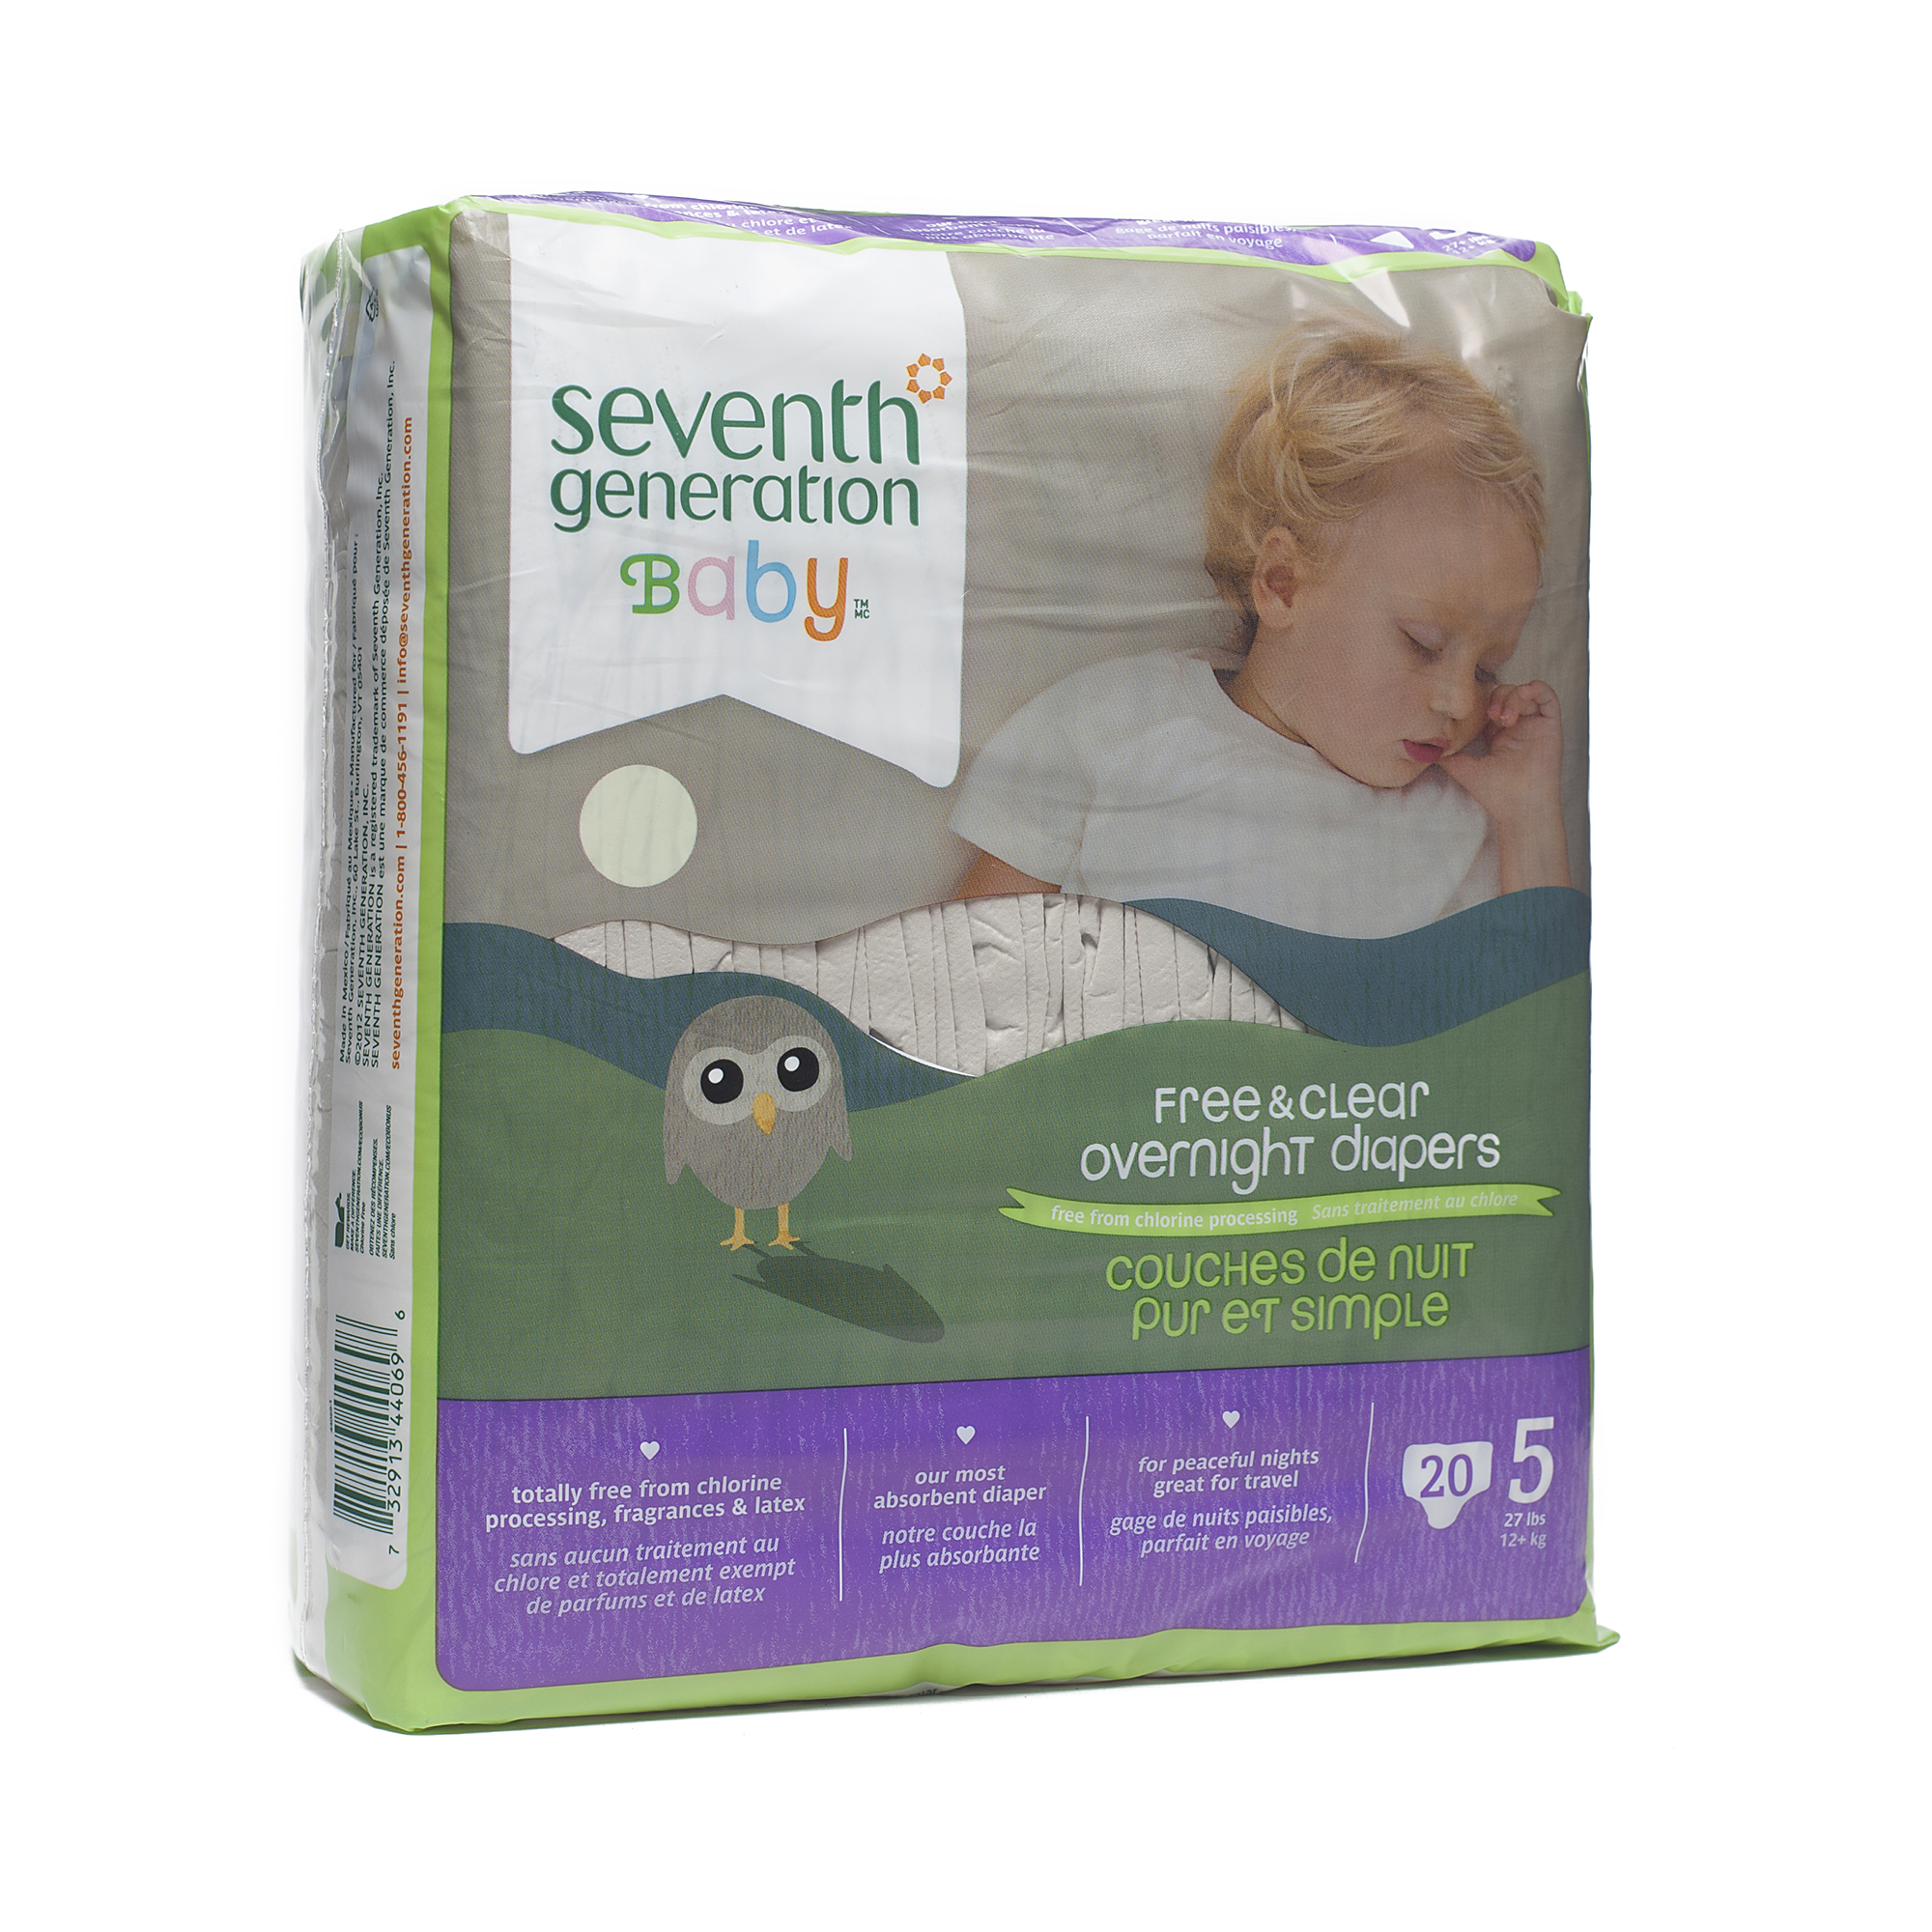 Seventh Generation Baby Overnight Diapers, Pack of 4 (Choose Your Size)